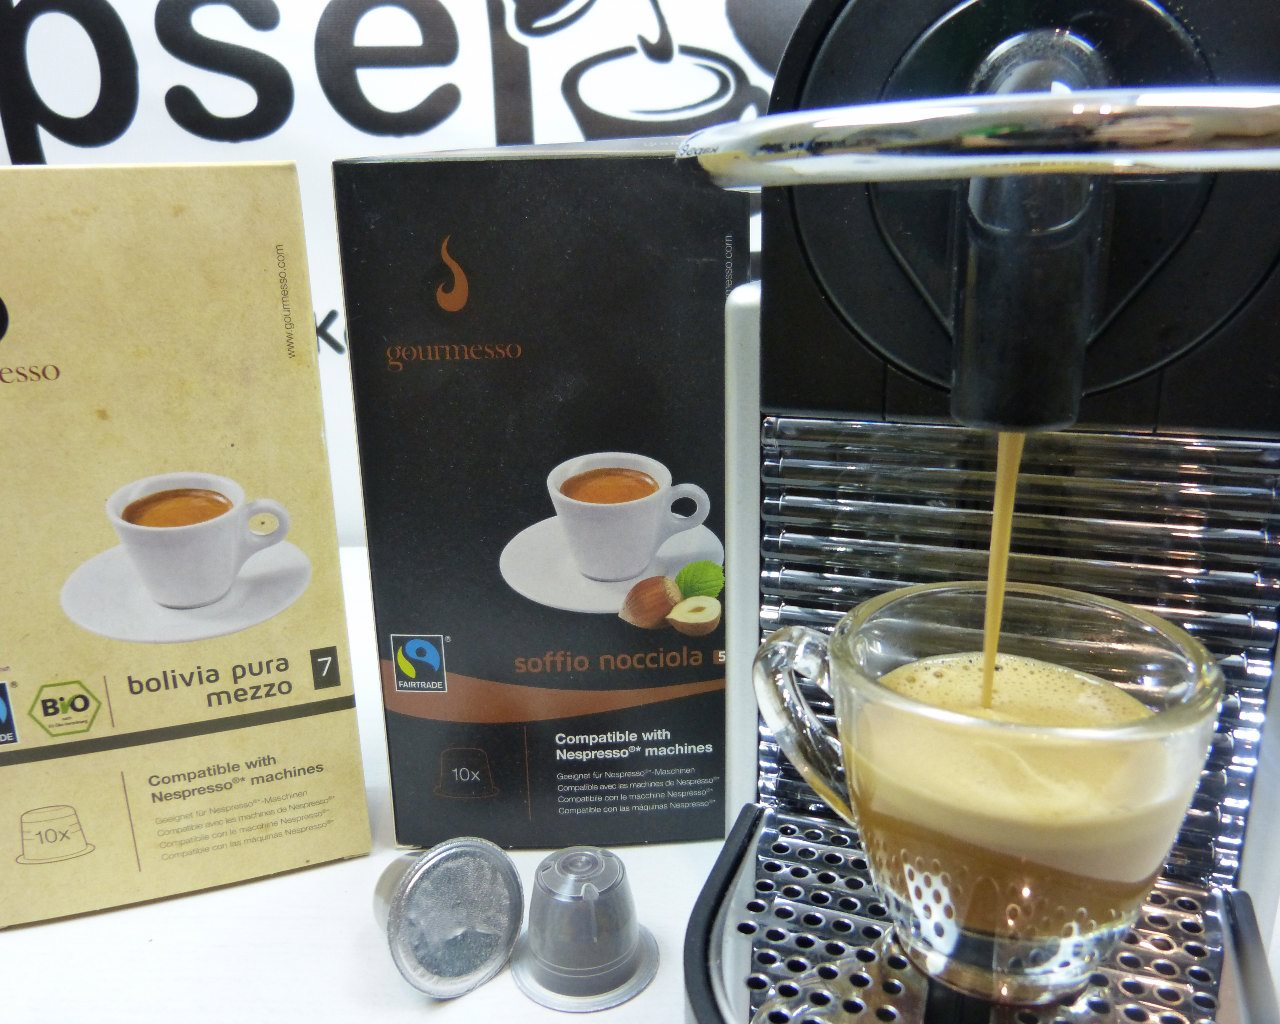 gourmesso kaffeekapseln im test kompatibel mit nespresso016 kapsel. Black Bedroom Furniture Sets. Home Design Ideas